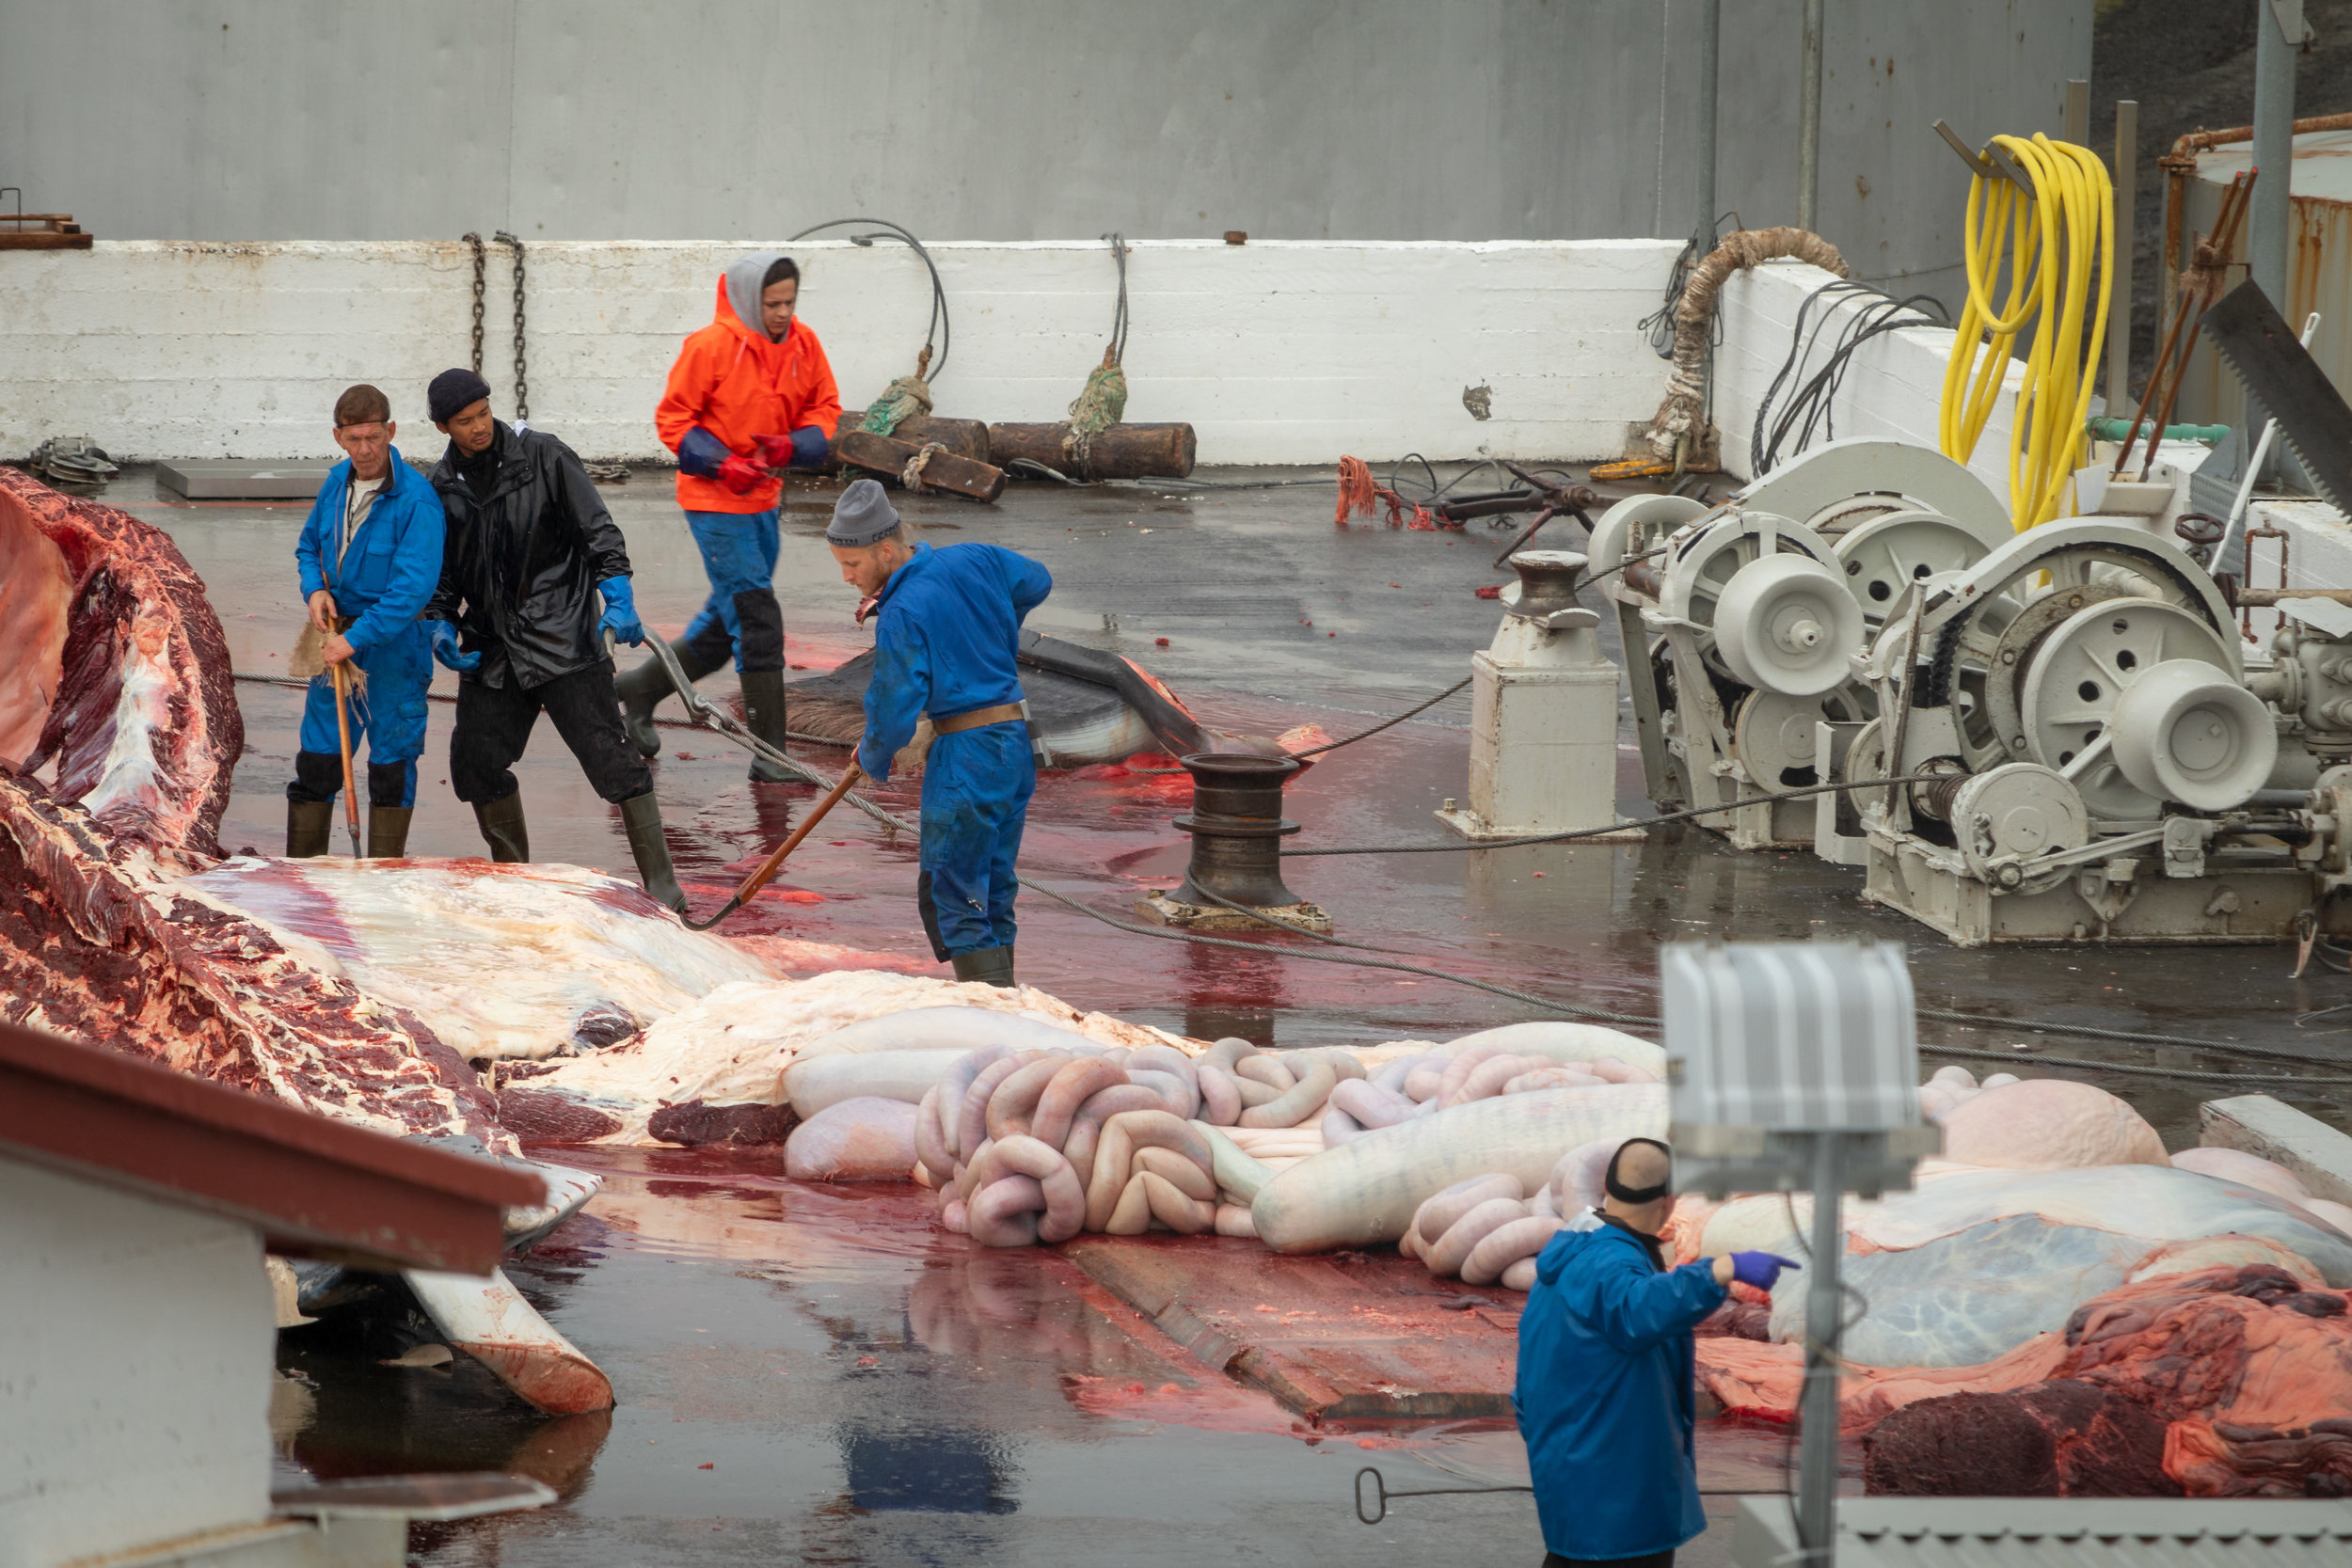 Waste is hauled away to be discarded into holes in the floor of the whaling station